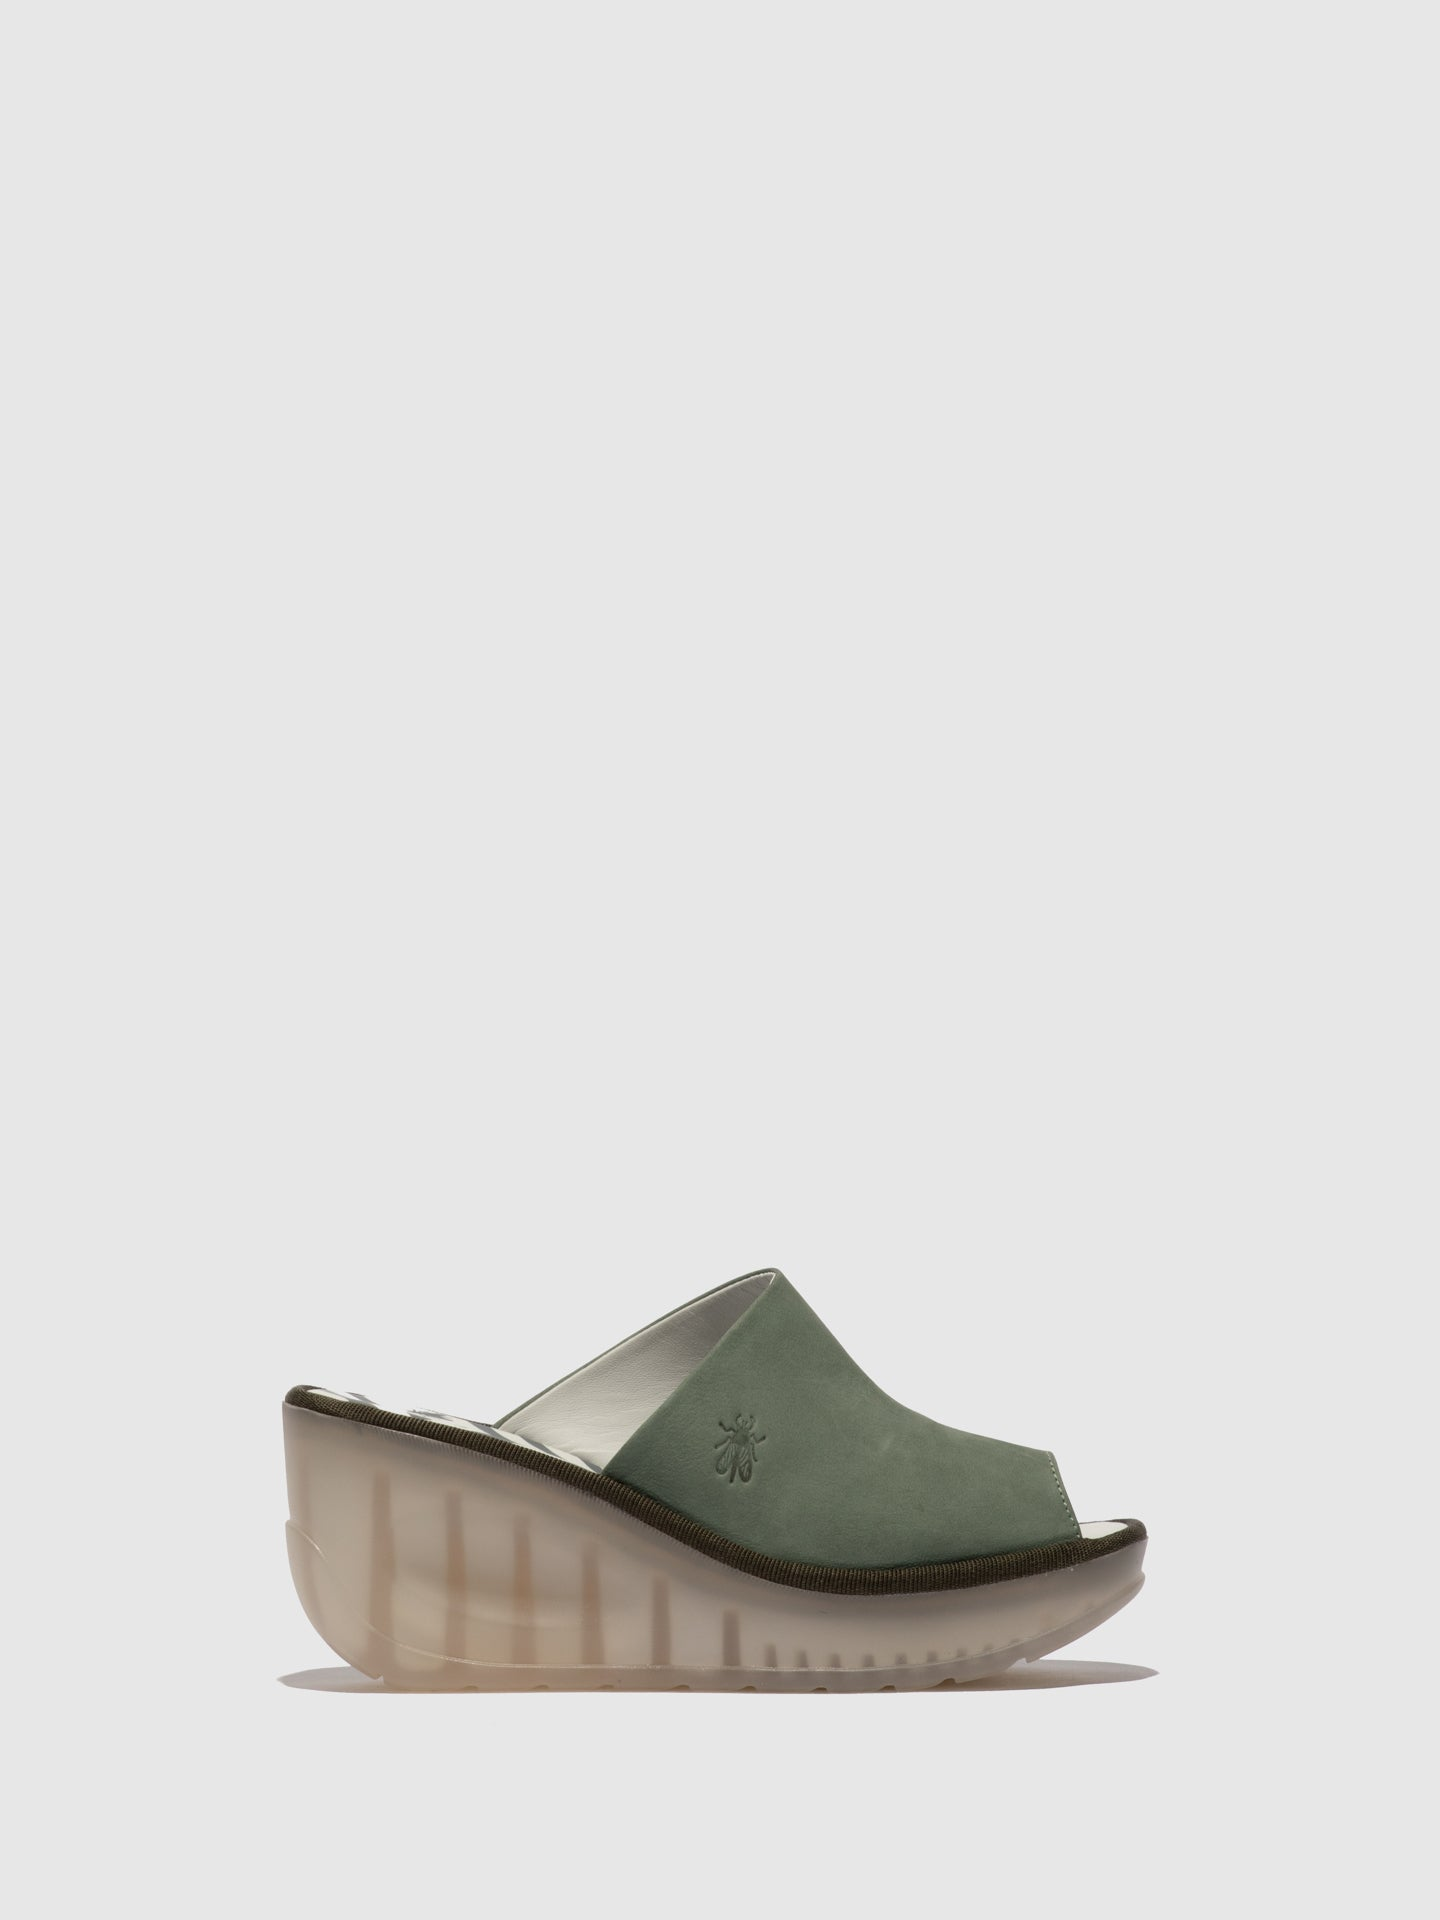 Fly London Green Wedge Mules